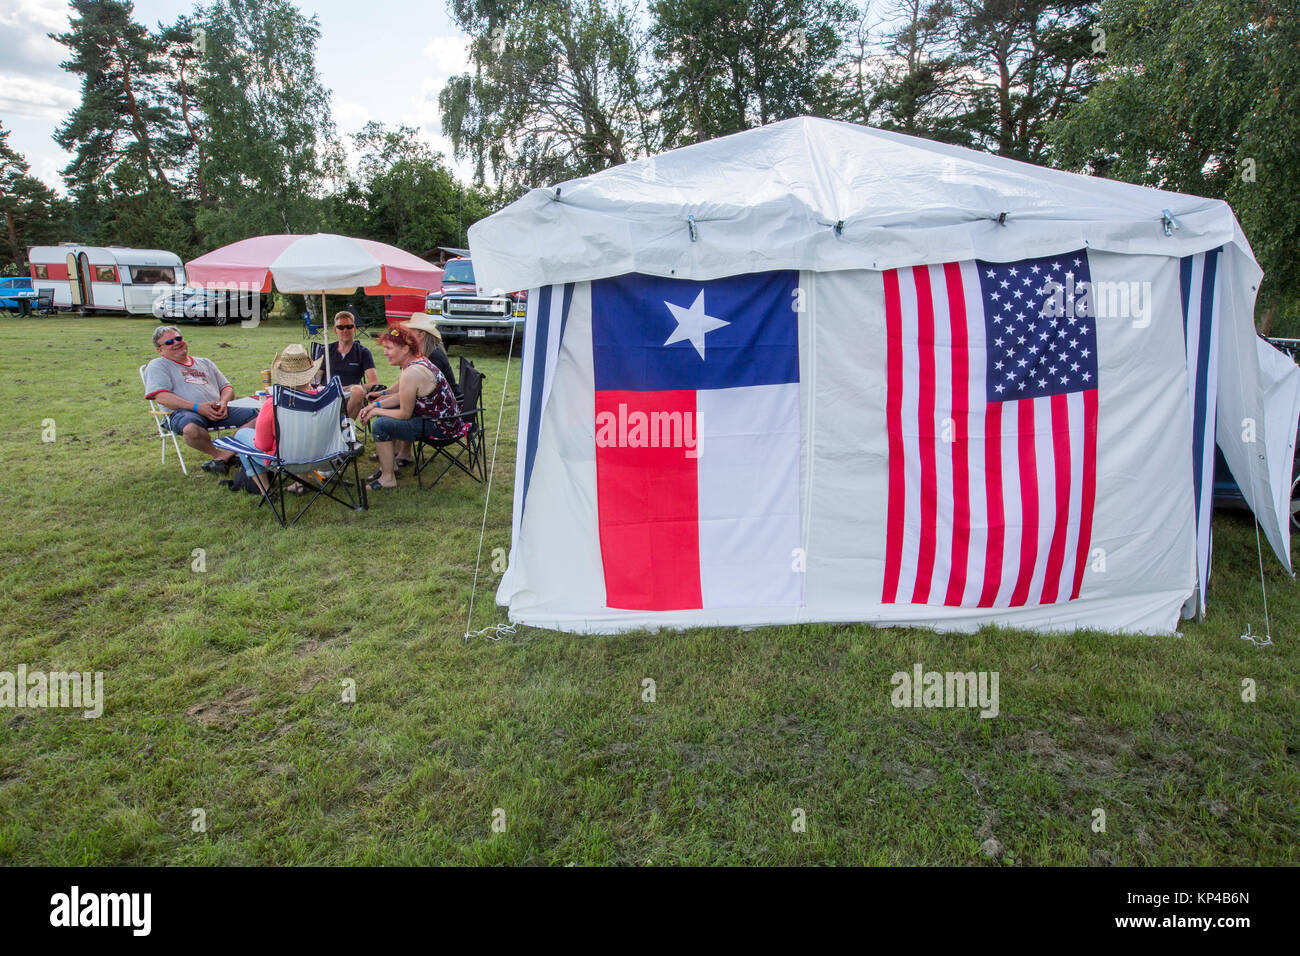 Texas and American flag on a tent Upplands Väsby Sweden. & Texas and American flag on a tent Upplands Väsby Sweden Stock ...